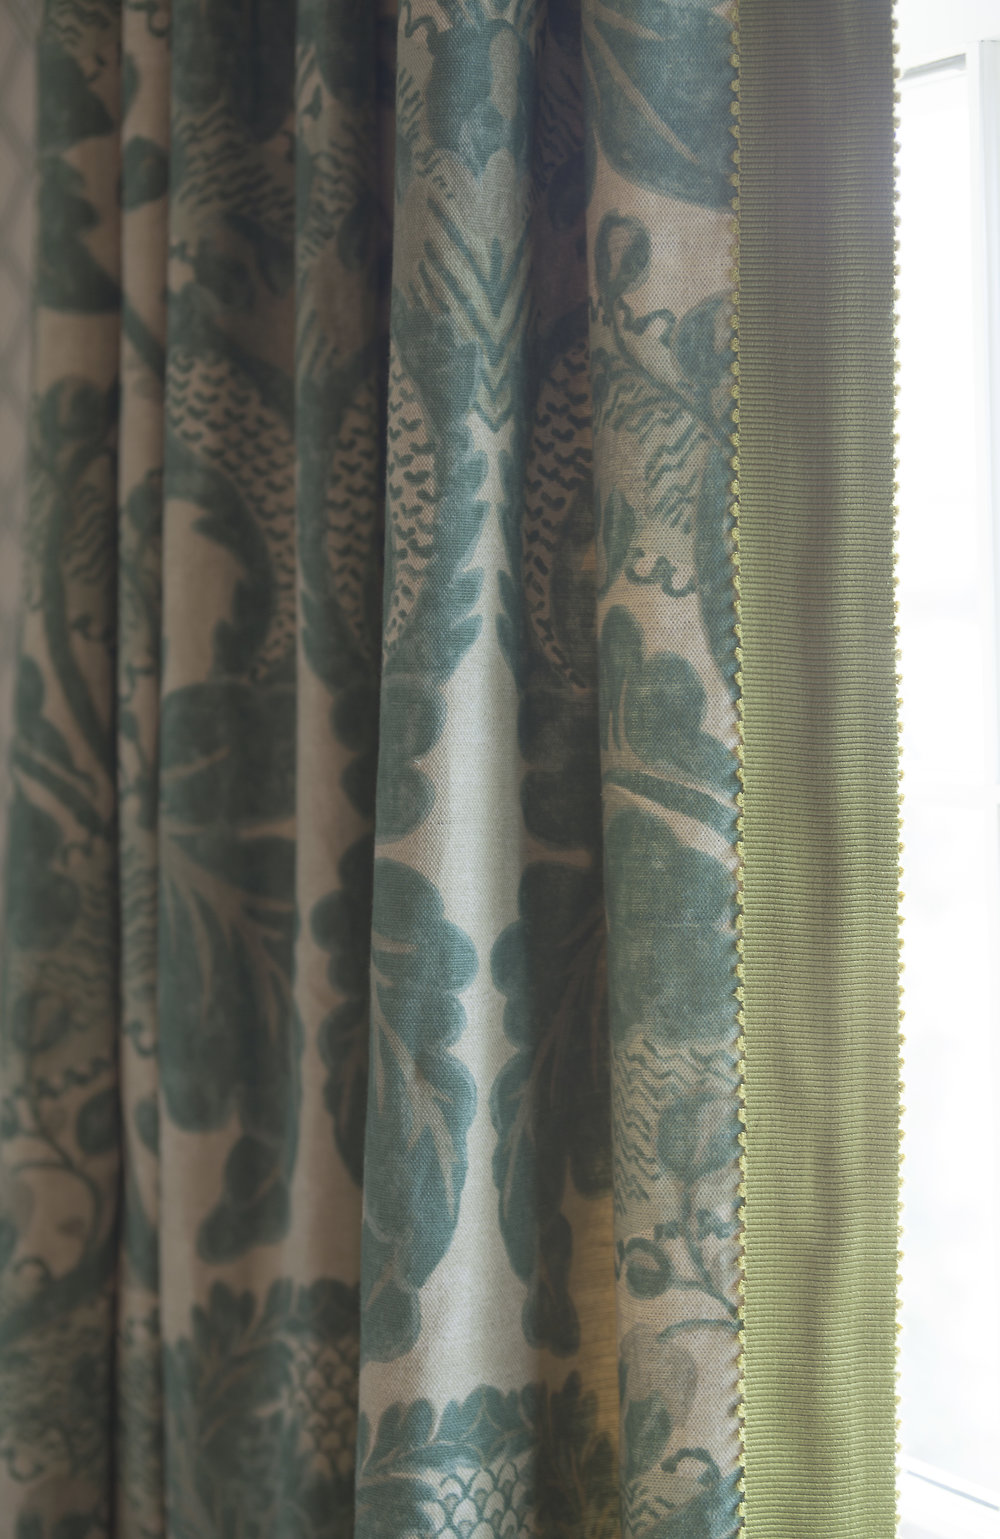 dining room drapery detail.jpg